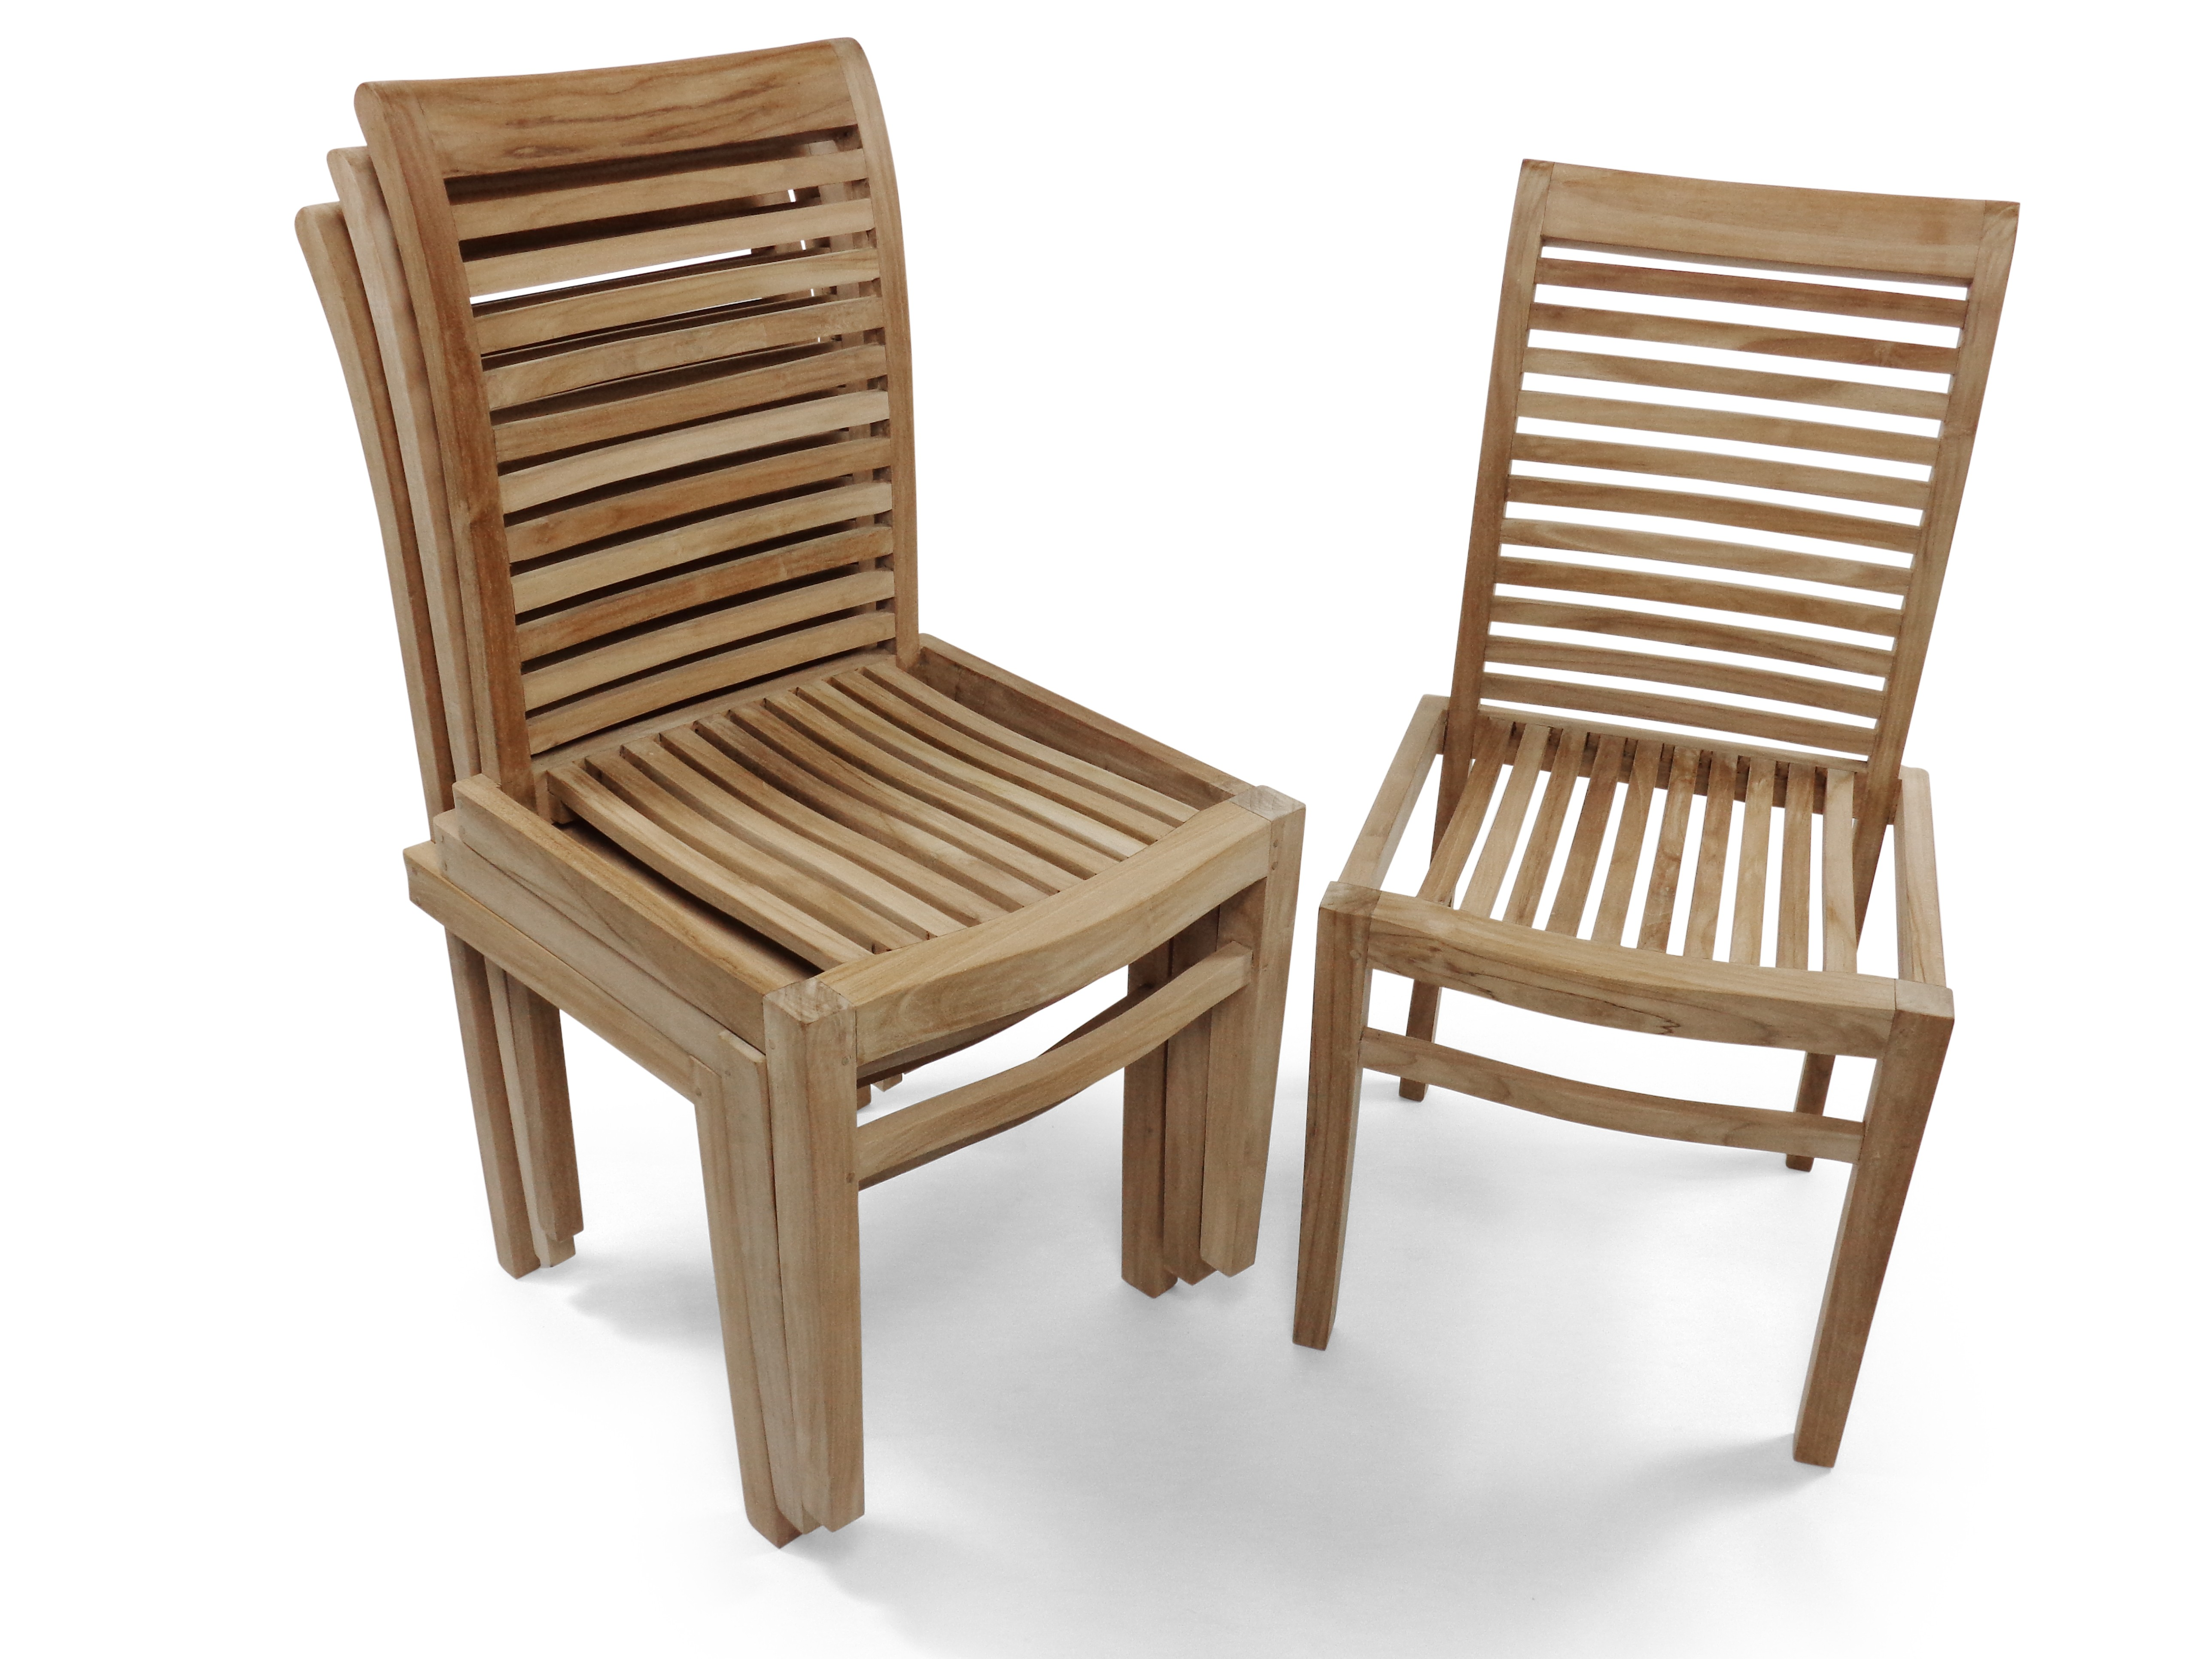 Casa Blanca Armless Teak Stacking Chair w Comfortable Contoured Seats, Packed and Price 4 per Box. Assembled.